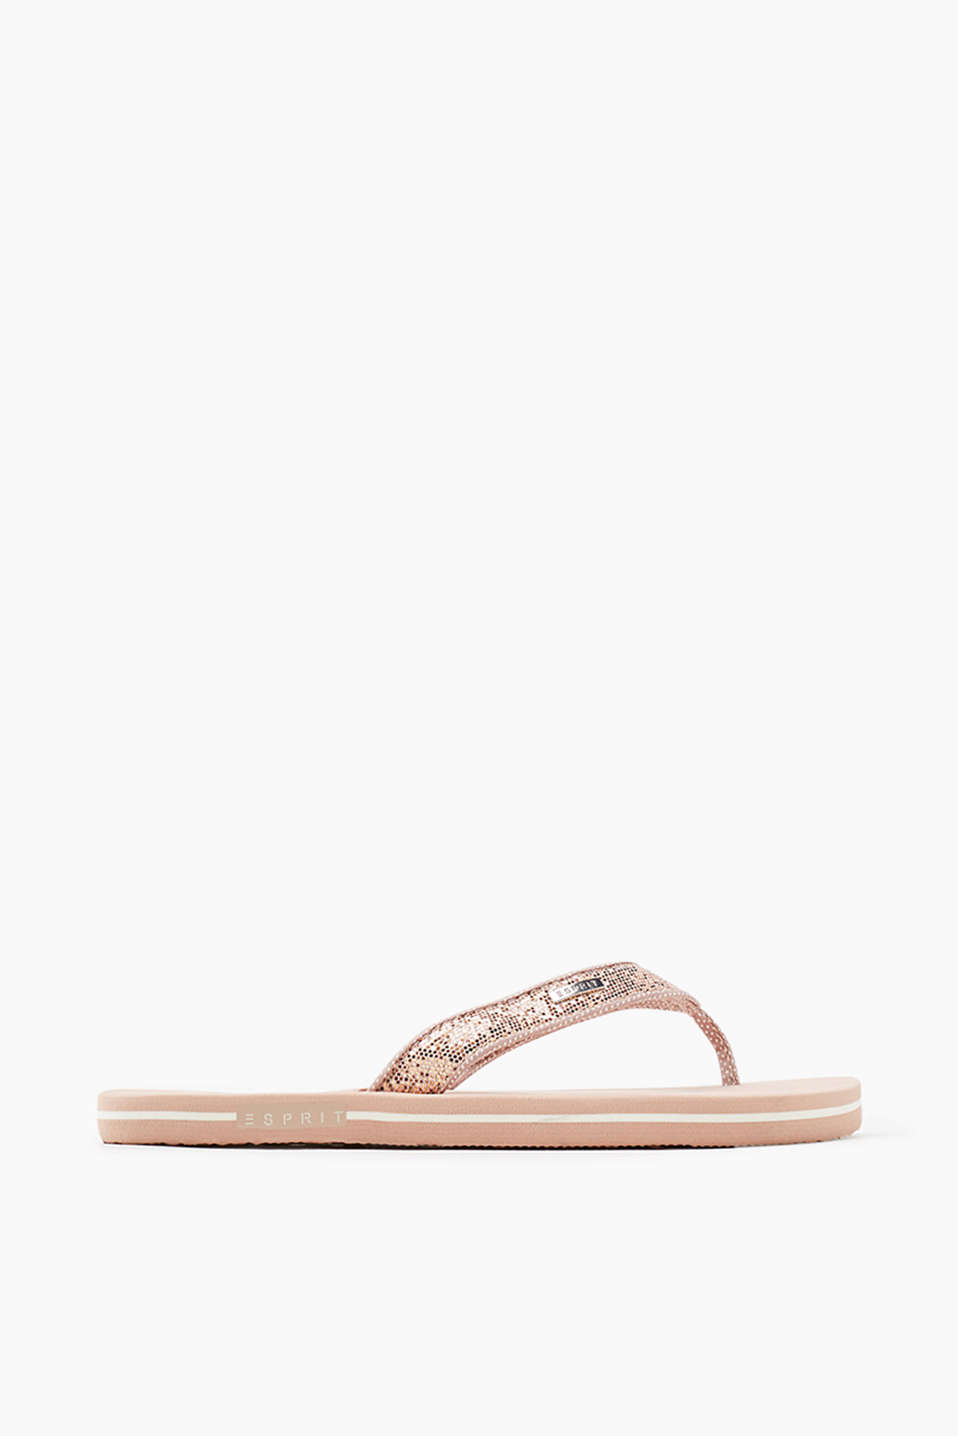 City thong sandals with textured, glittery straps